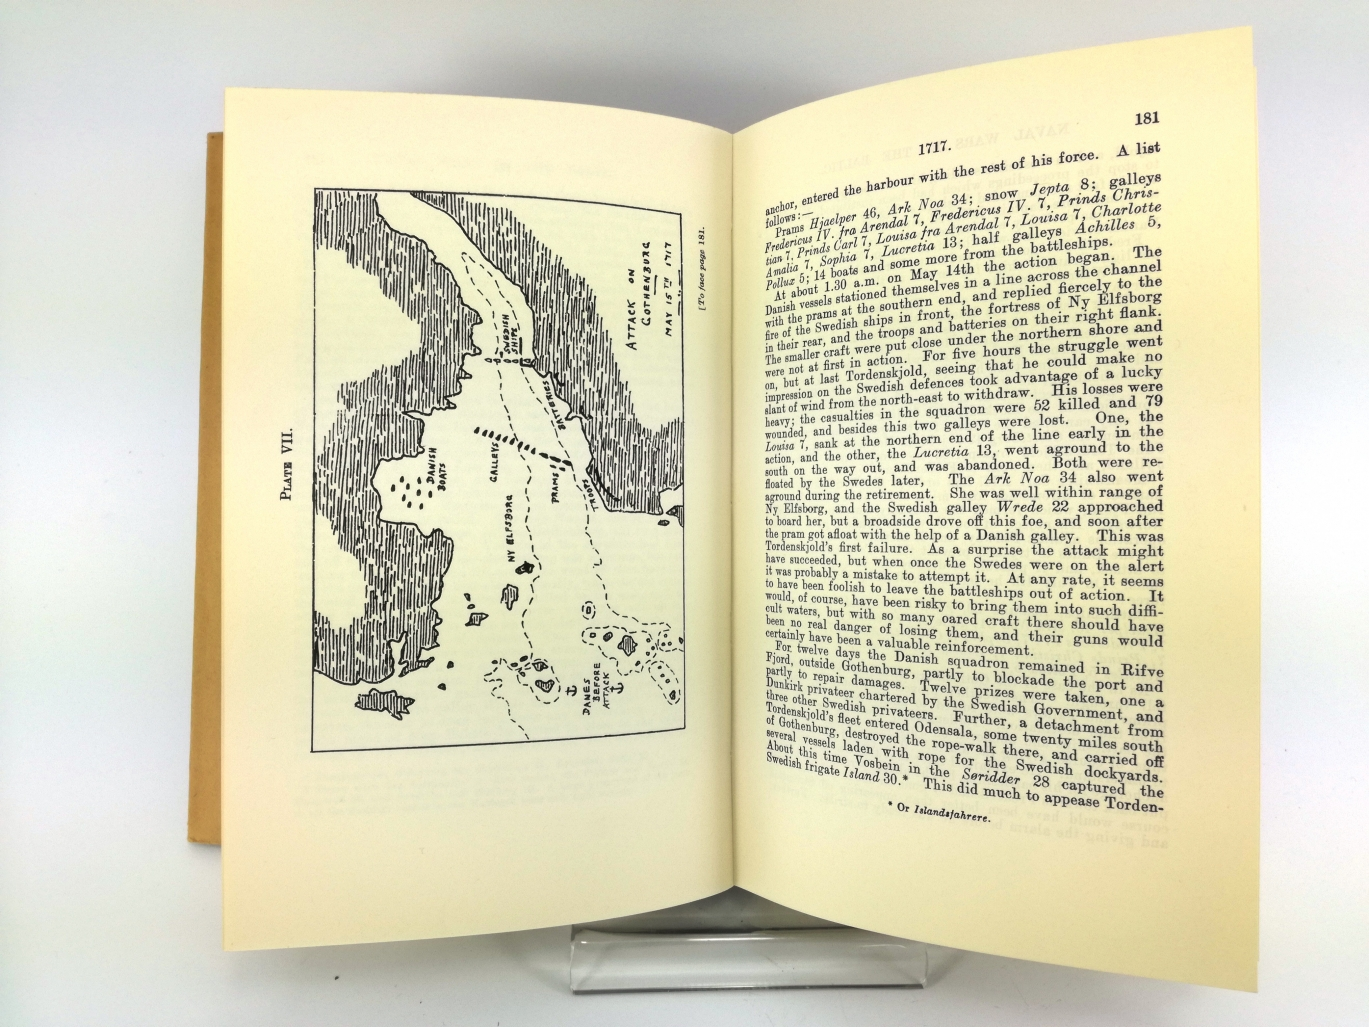 Anderson, R.C.: Naval Wars in the Baltic 1522-1850. Facsimile Reprint